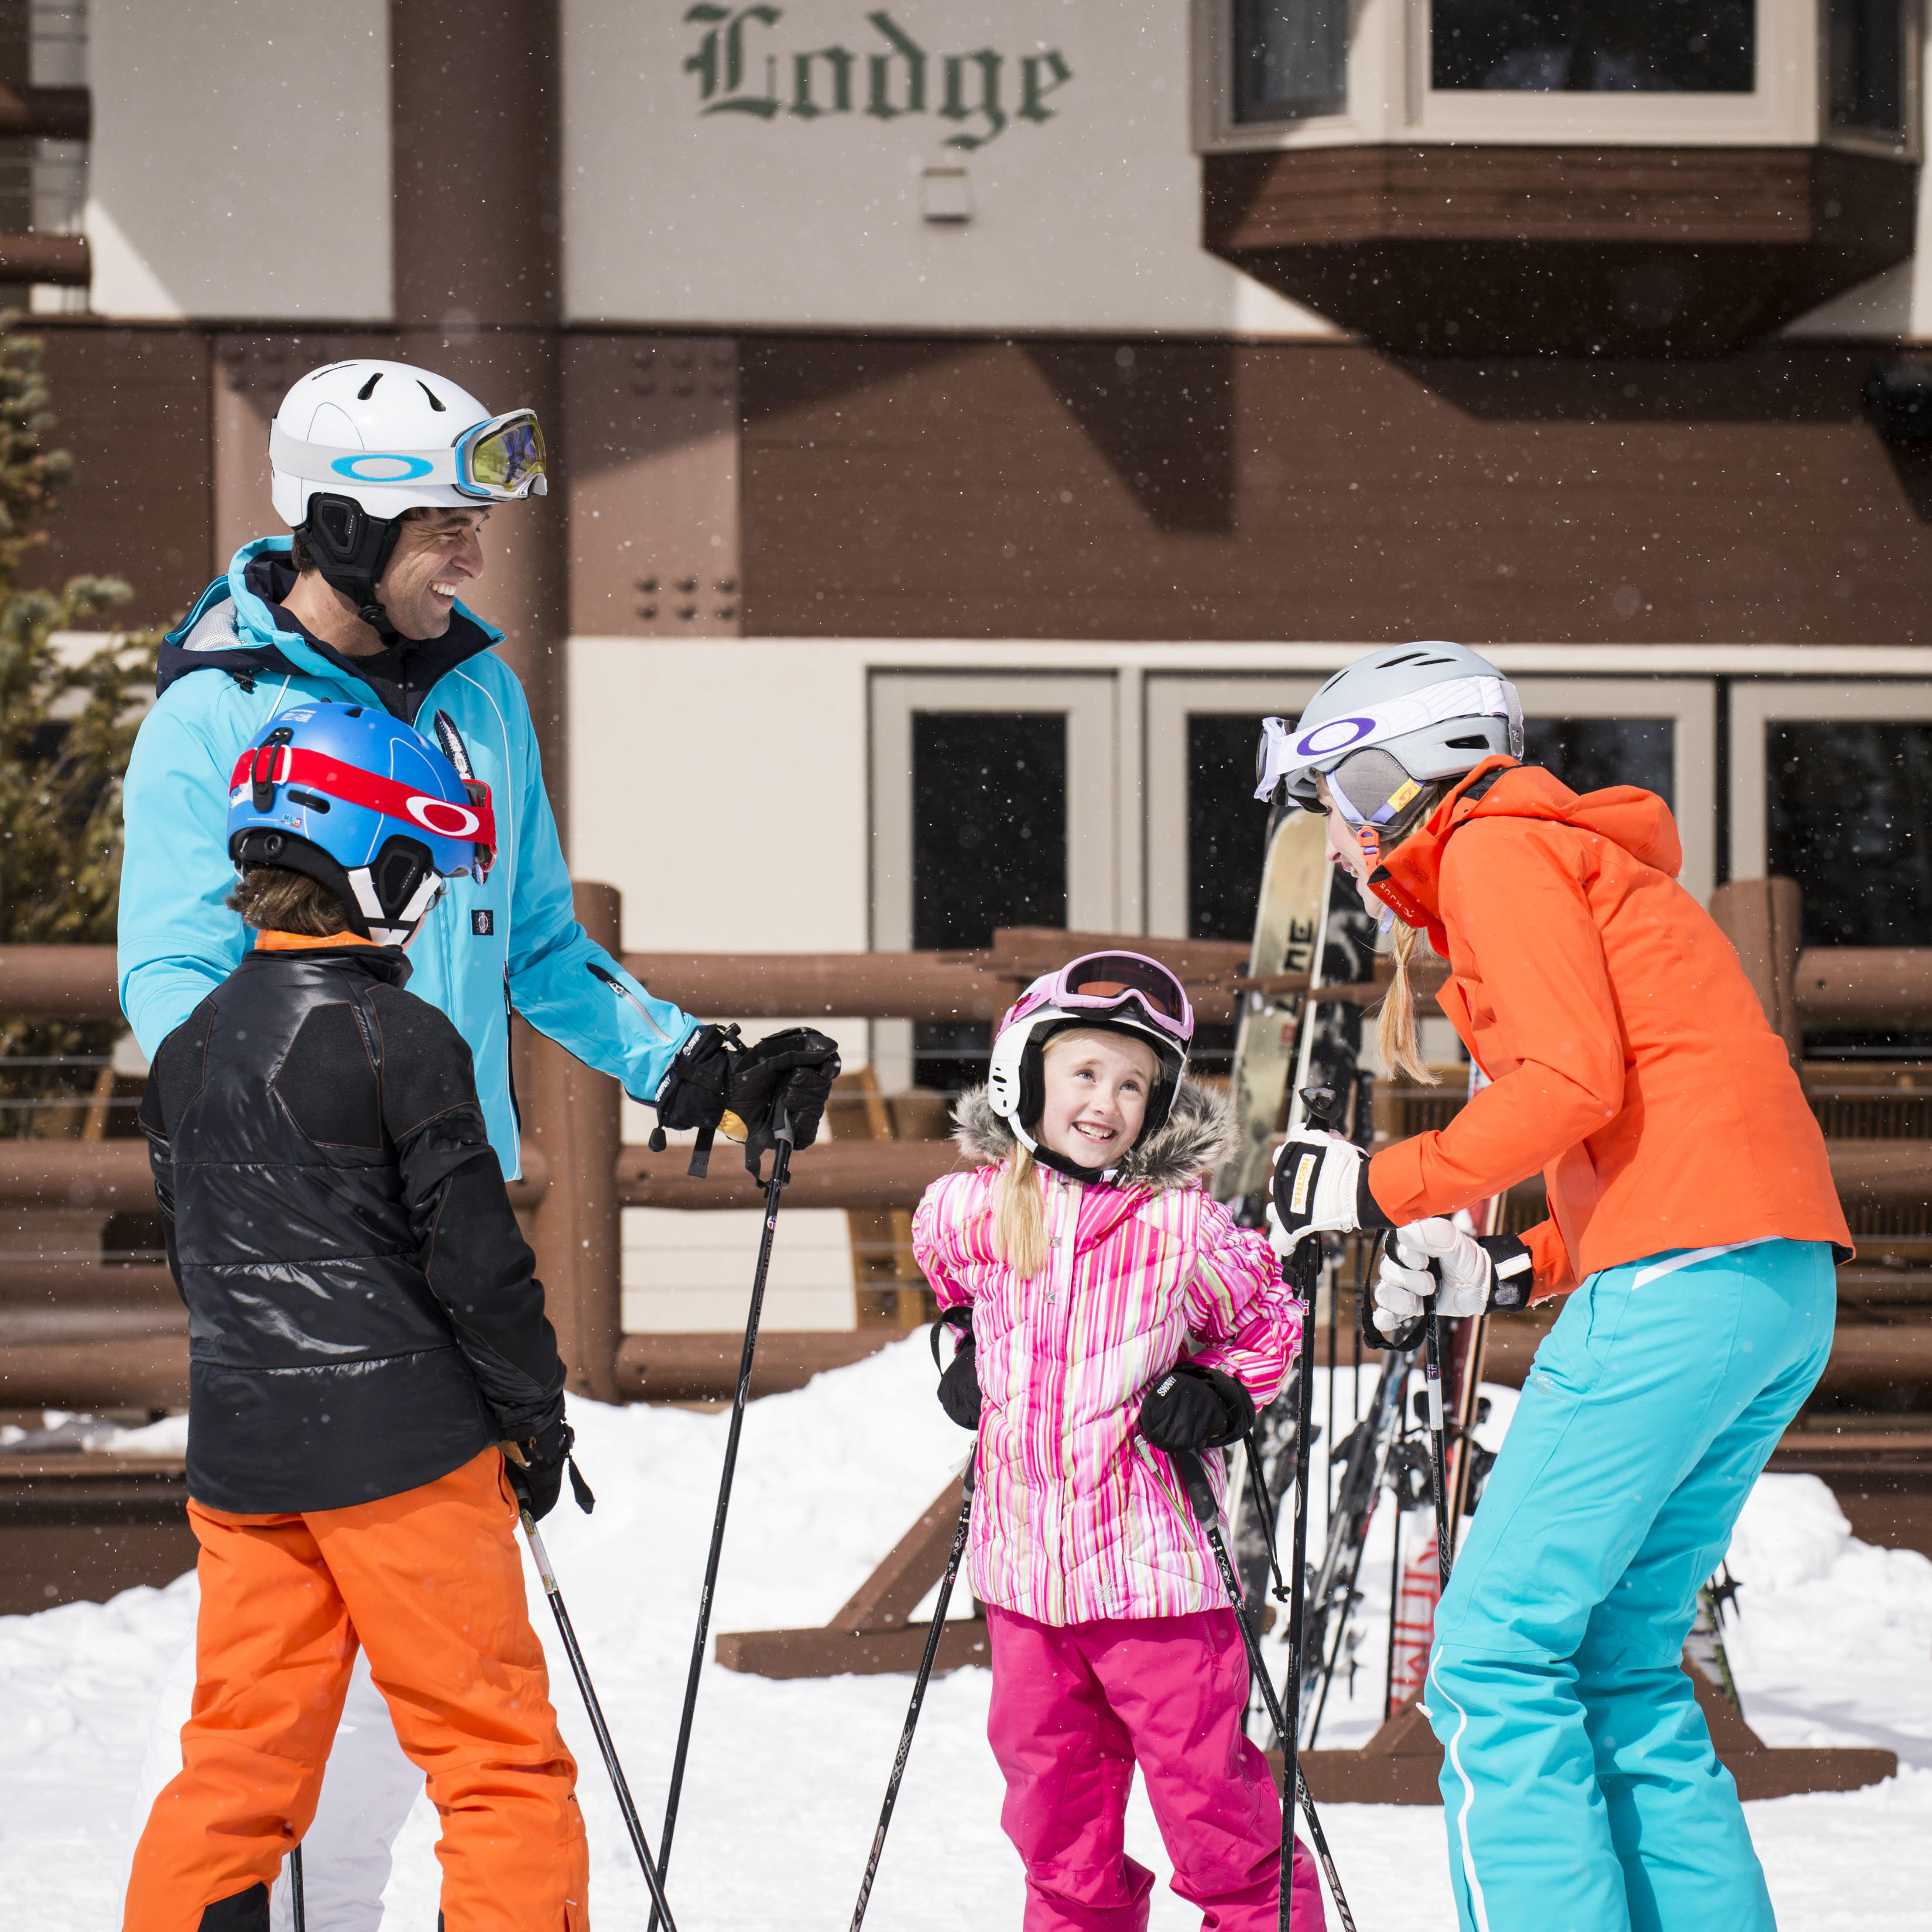 a family going skiing